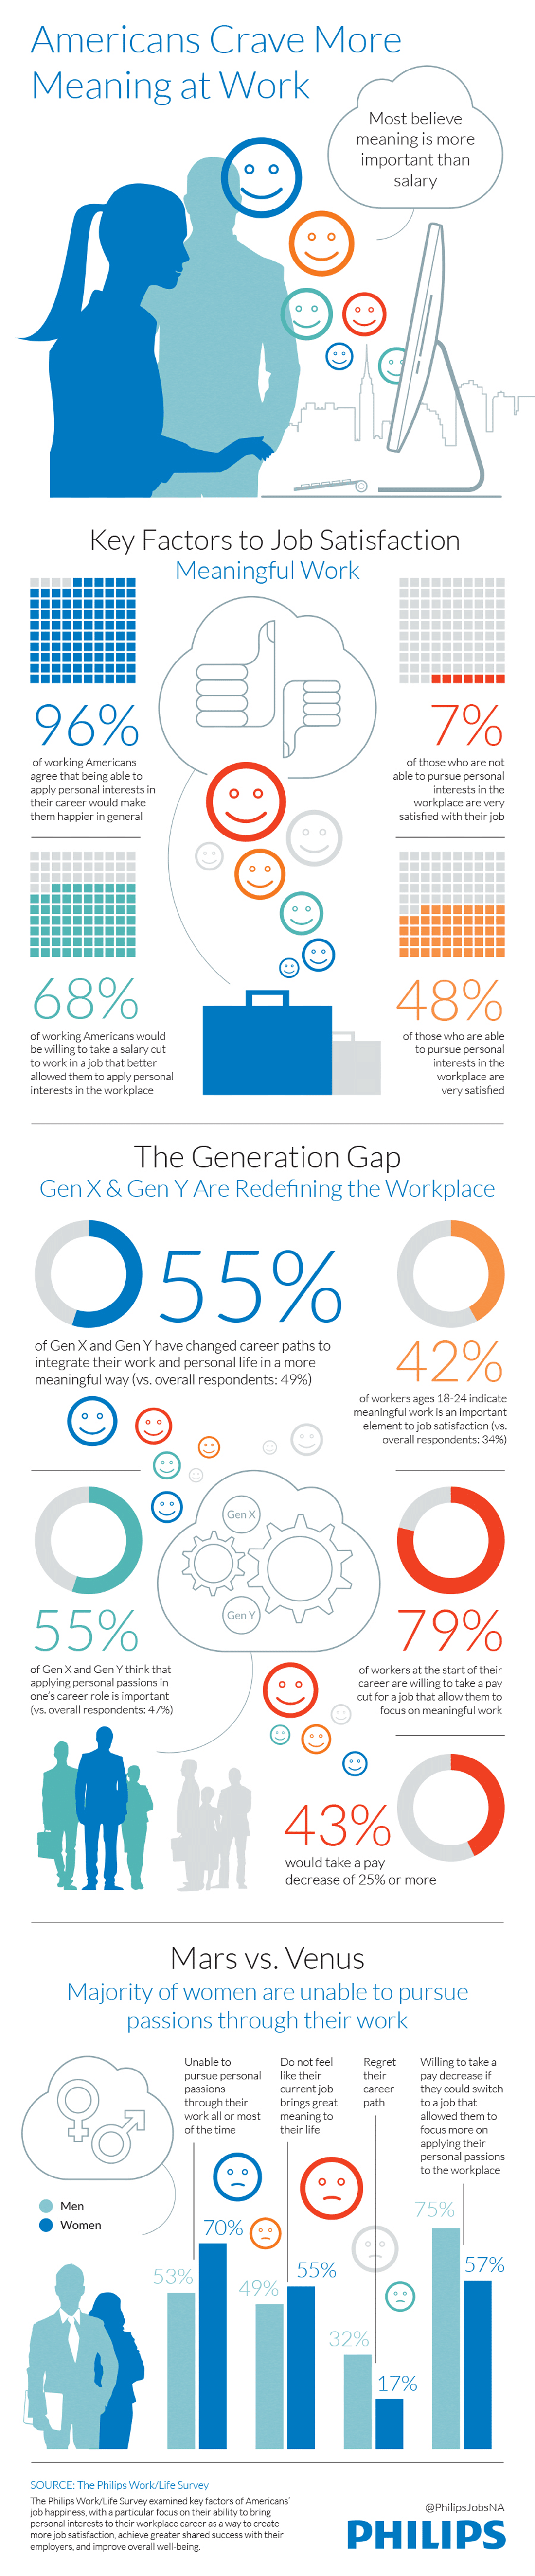 Work-Satisfaction-is-More-Important-Than-Salary-INFOGRAPHIC